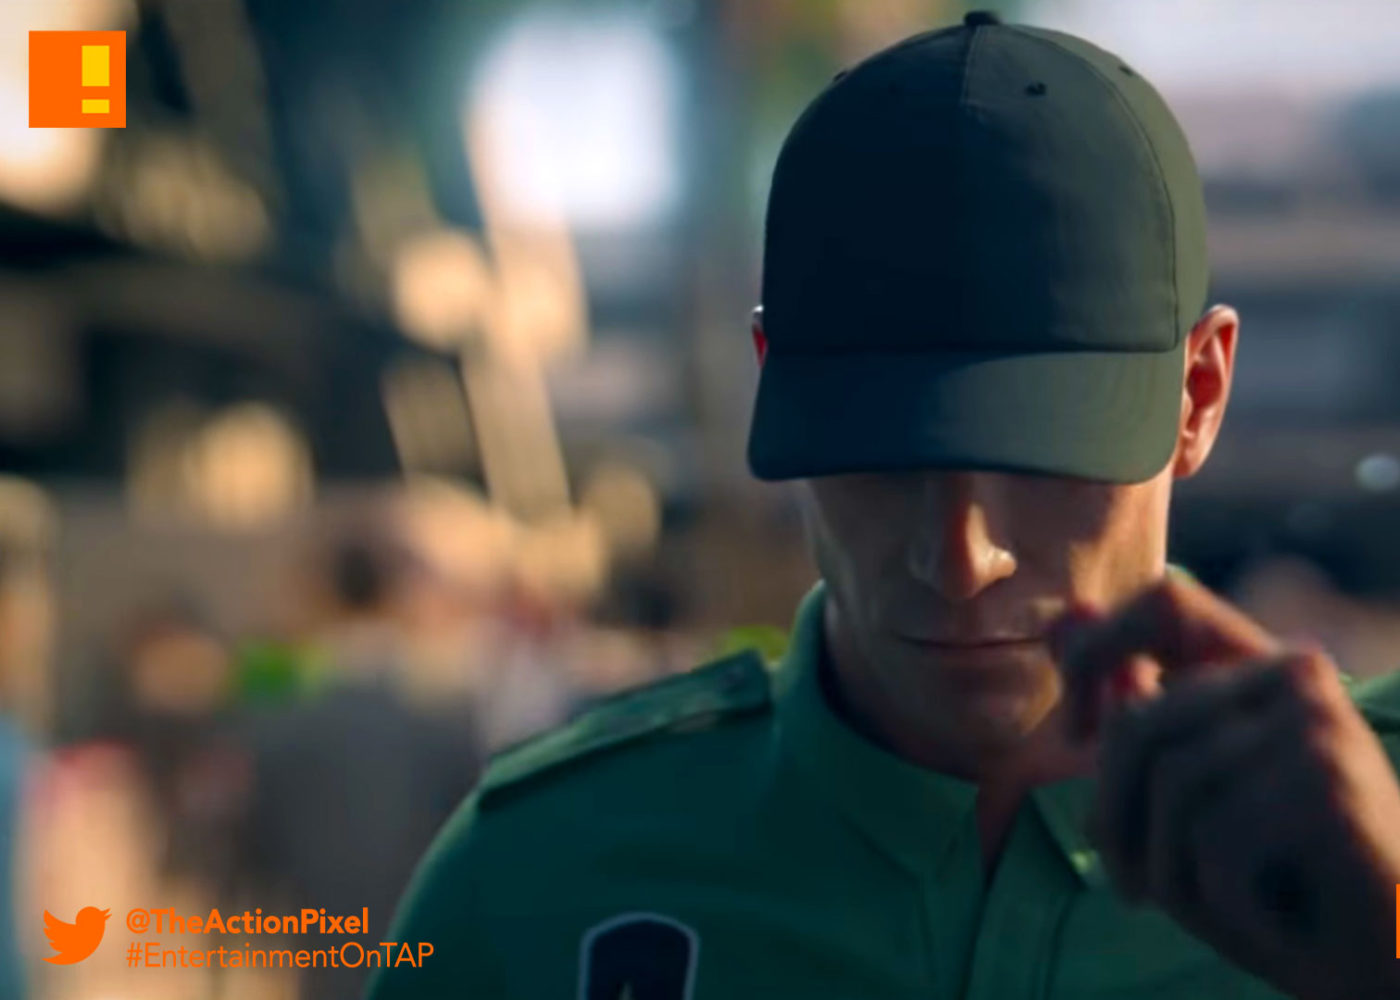 hitman 2, hitman, wb games, announce trailer, trailer, entertainment on tap, the action pixel